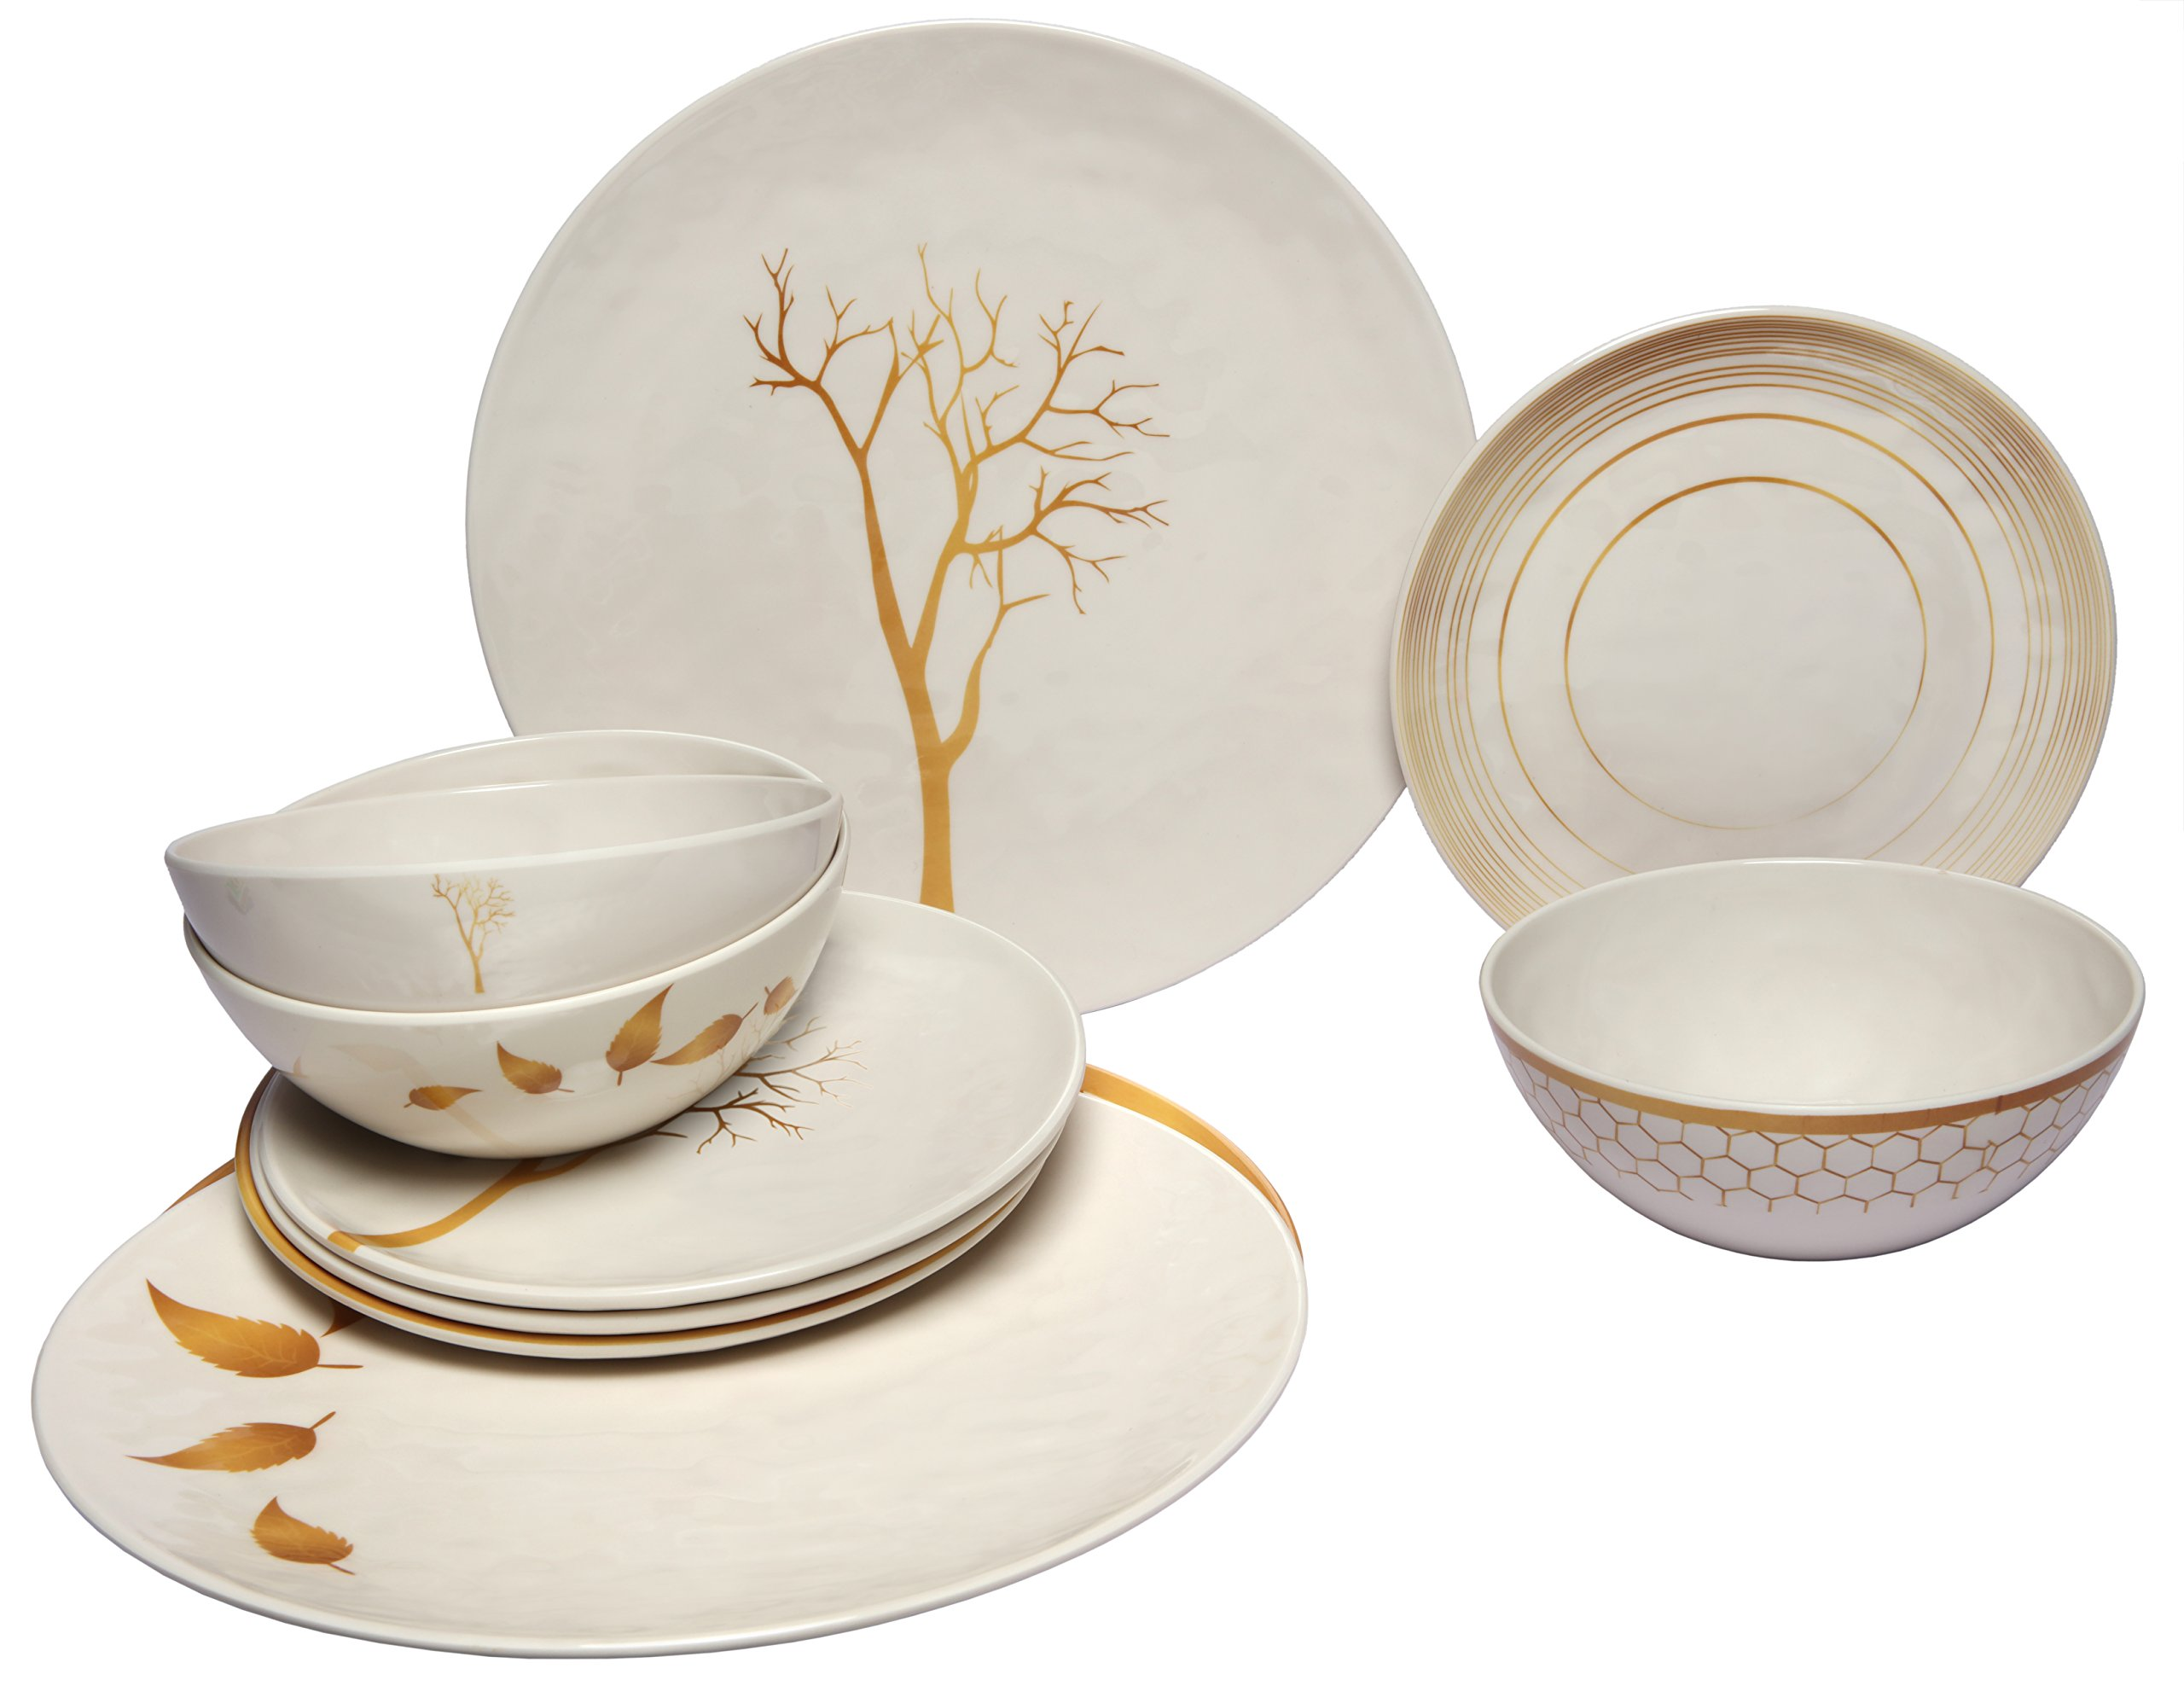 Melange 12-Piece 100% Melamine Dinnerware Set (Gold Nature Collection) | Shatter-Proof and Chip-Resistant Melamine Plates and Bowls | Dinner Plate, Salad Plate & Soup Bowl (4 Each)